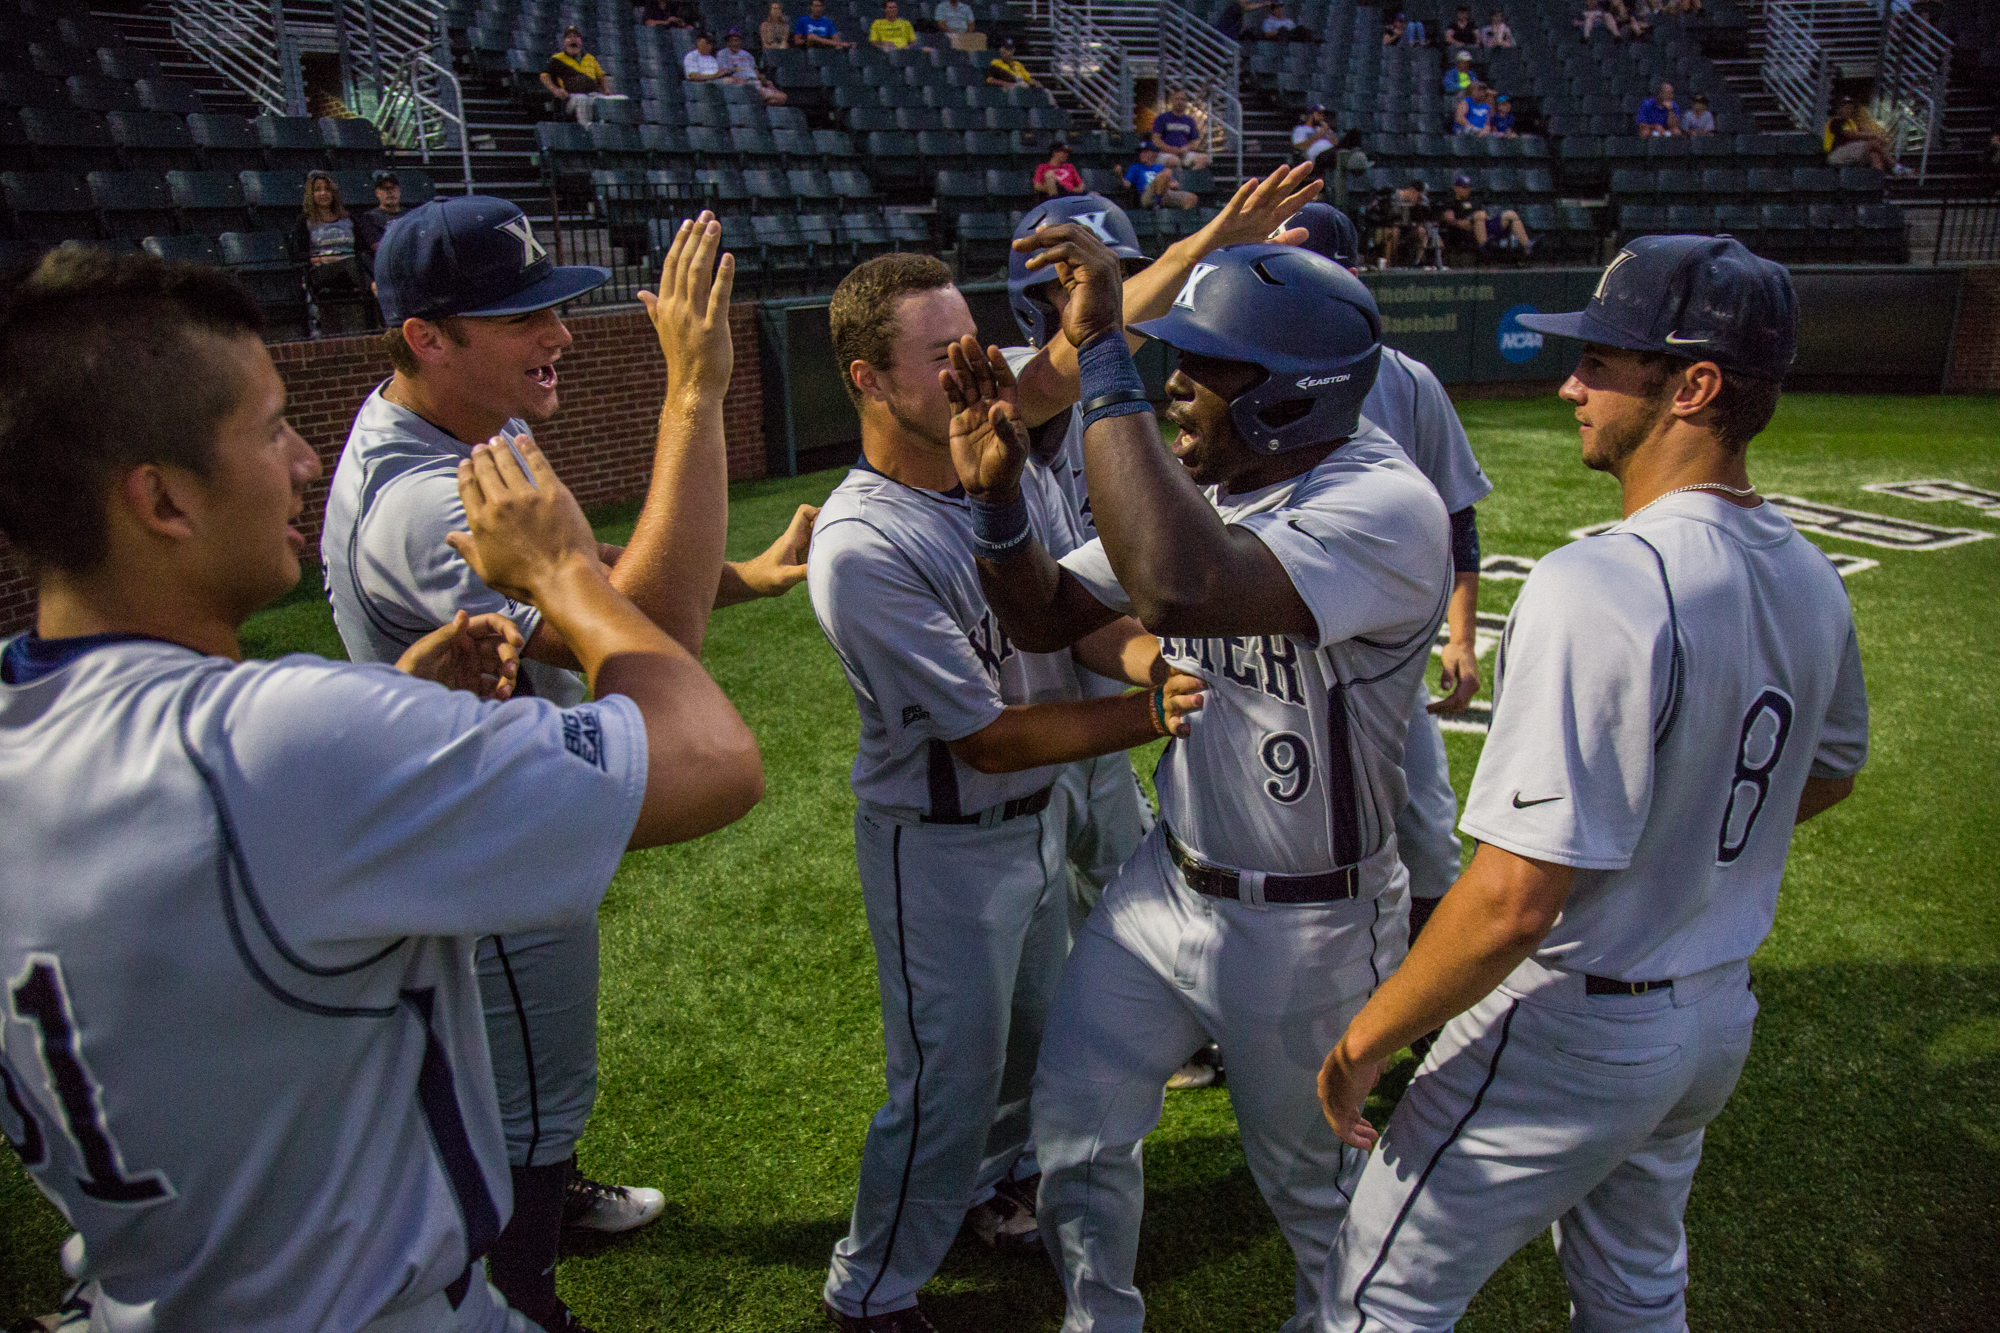 Andre Jernigan and friends celebrate his first-inning homer.